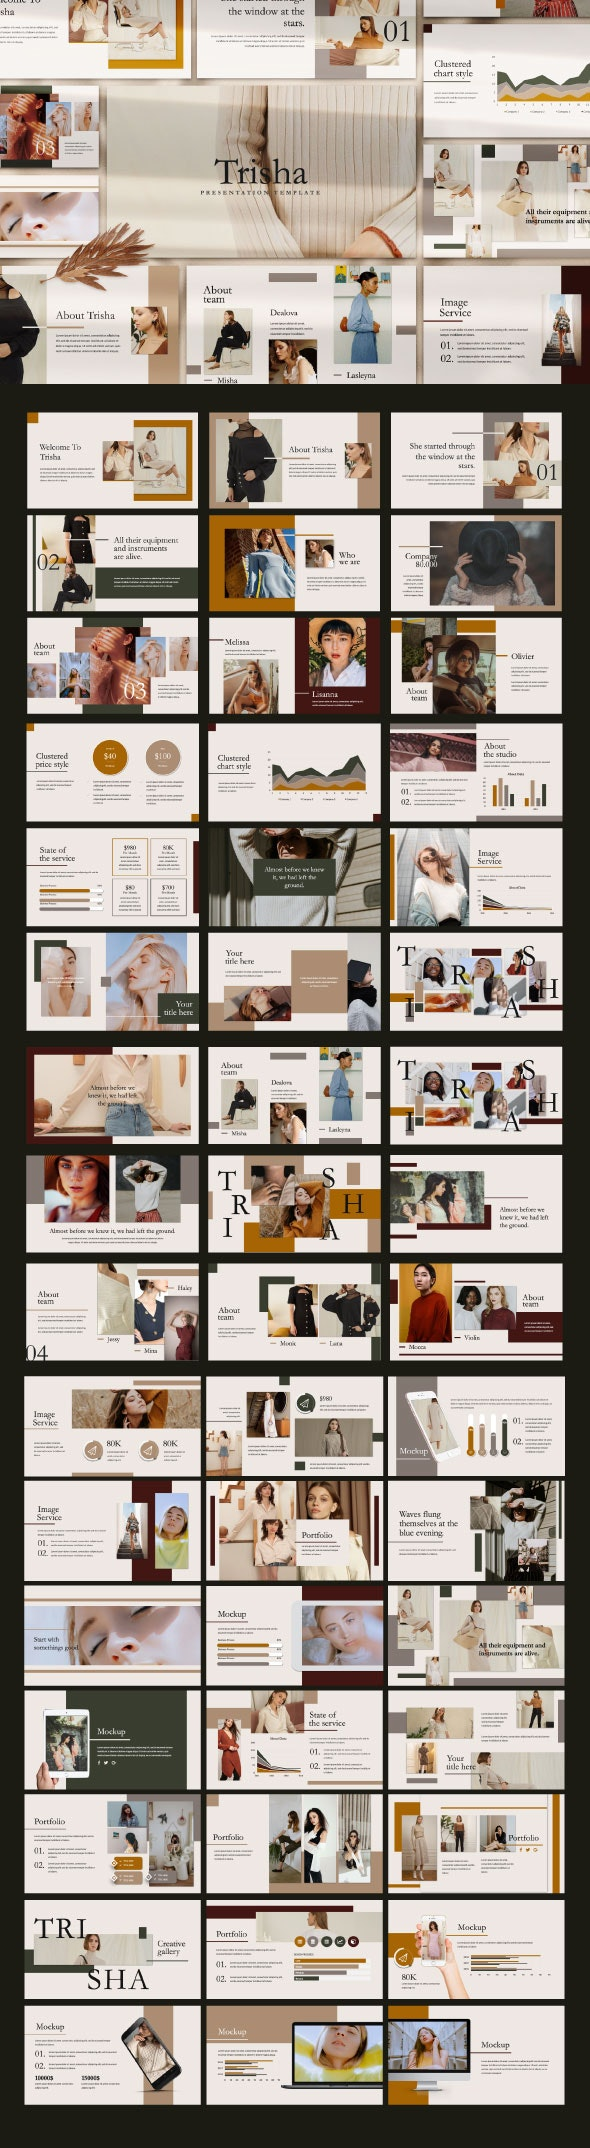 Trisha Google Slide Template - Google Slides Presentation Templates